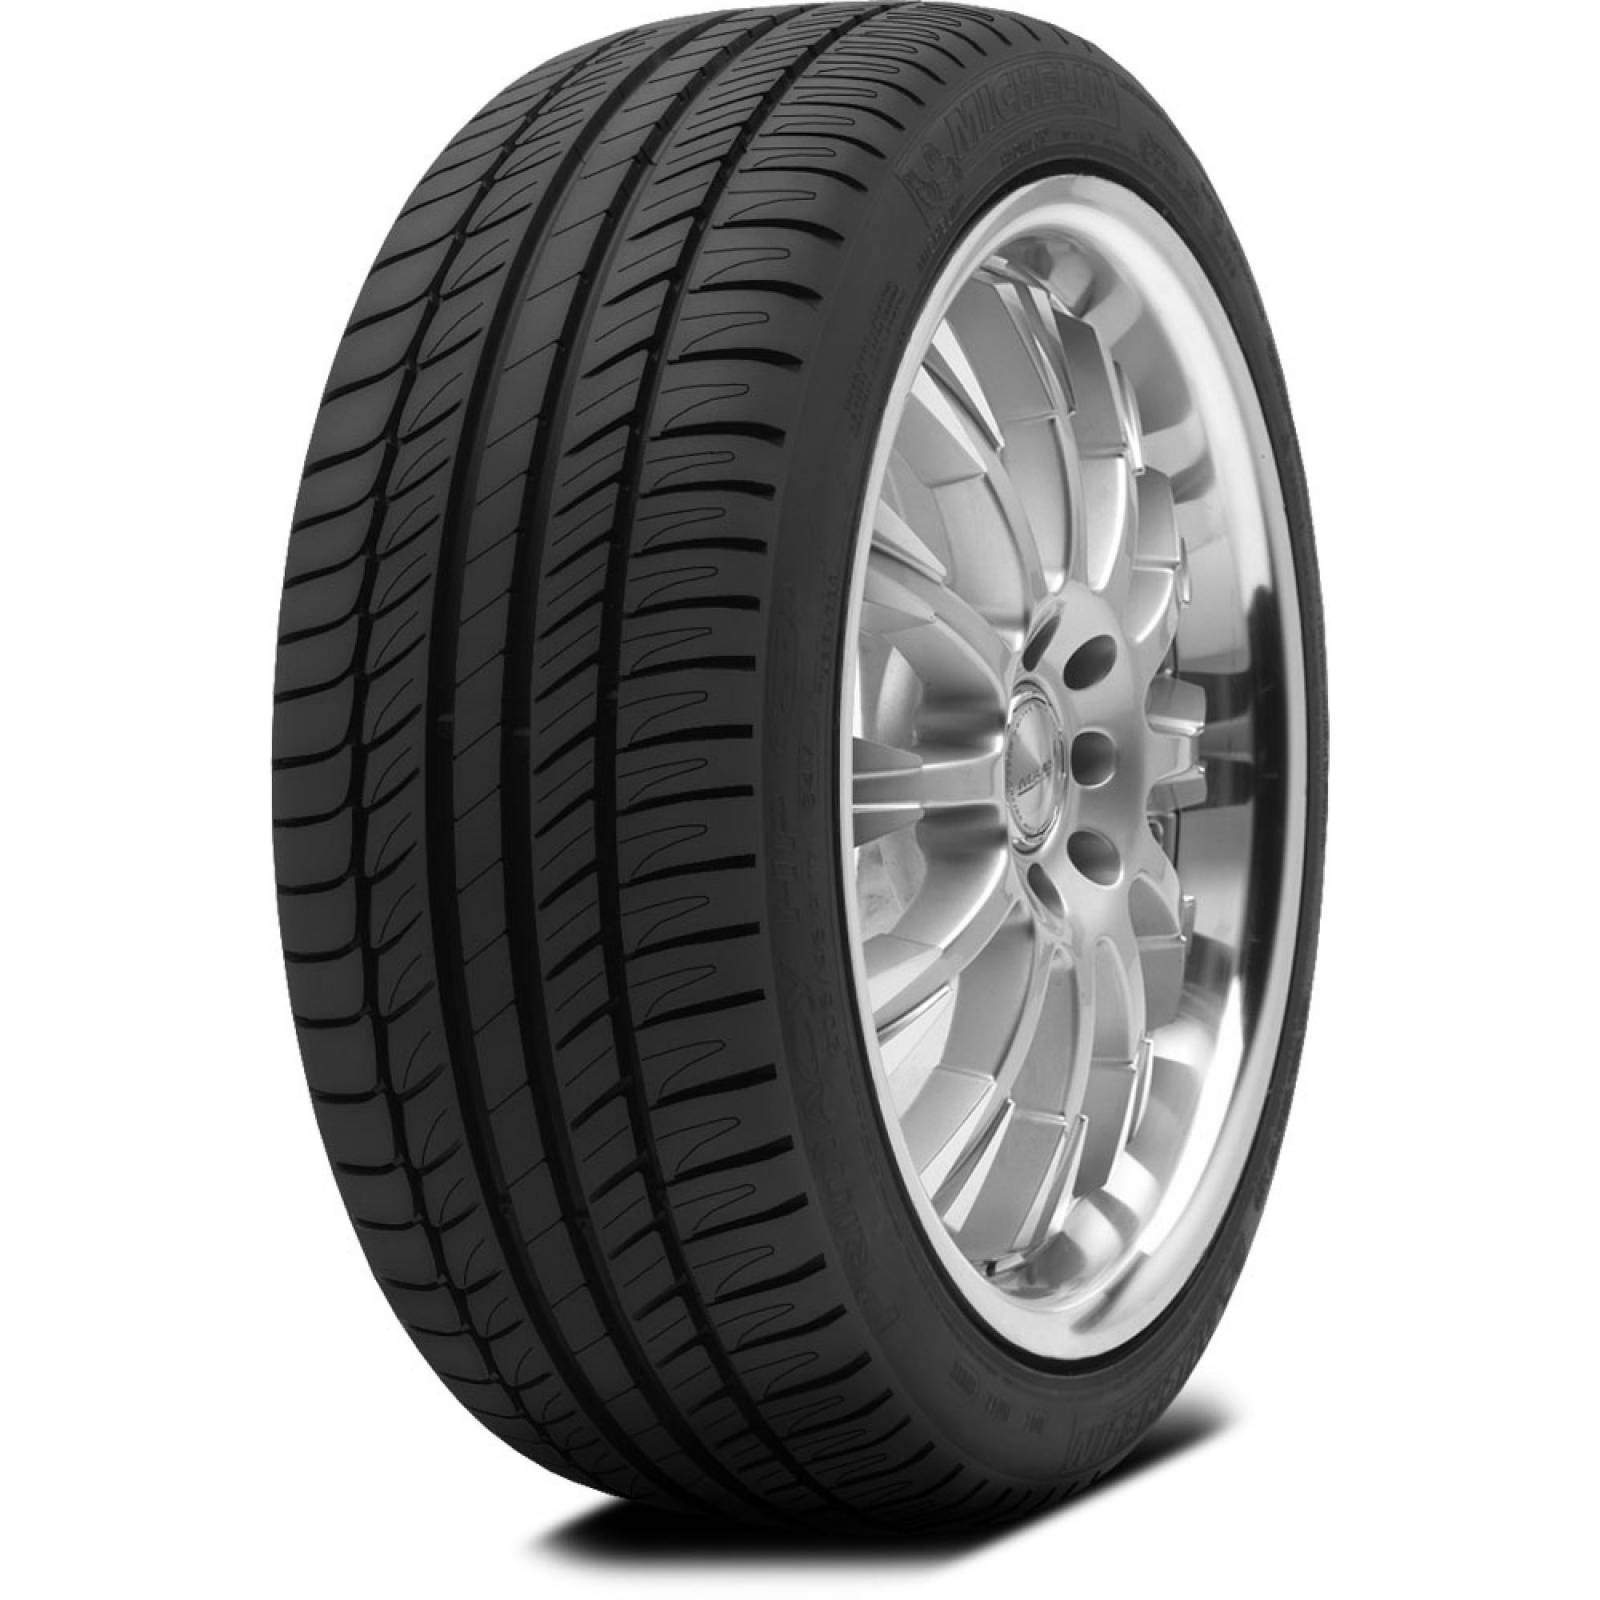 PNEU 205/55R 16 91V - PRIMACY HP ZP MICHELIN RUN FLAT - ORIGINAL BMW